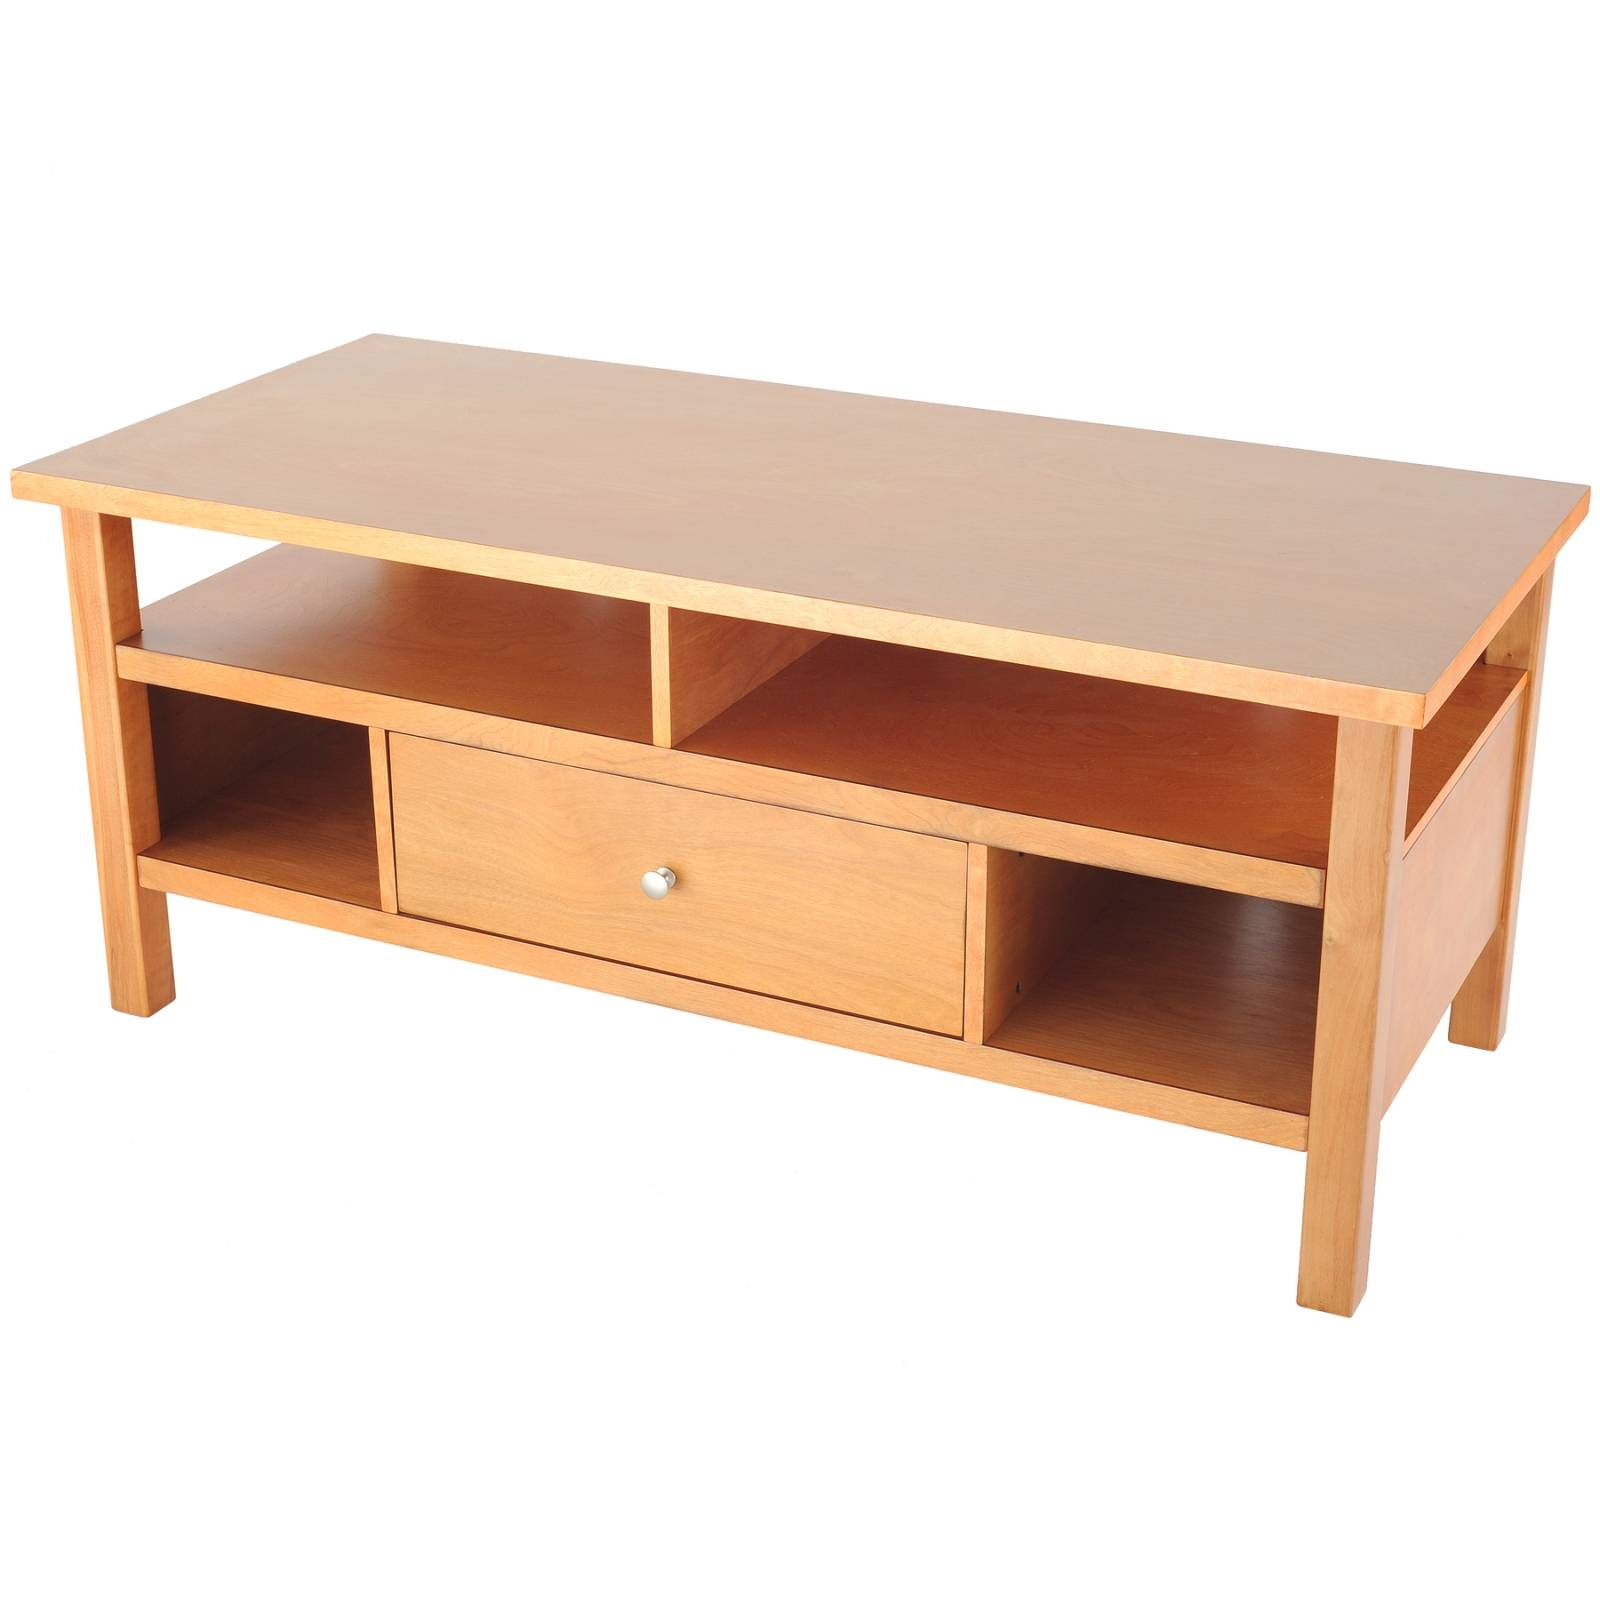 Why Maple Tv Stand Is One Of The Best Options You Should Consider intended for Maple Tv Stands (Image 15 of 15)